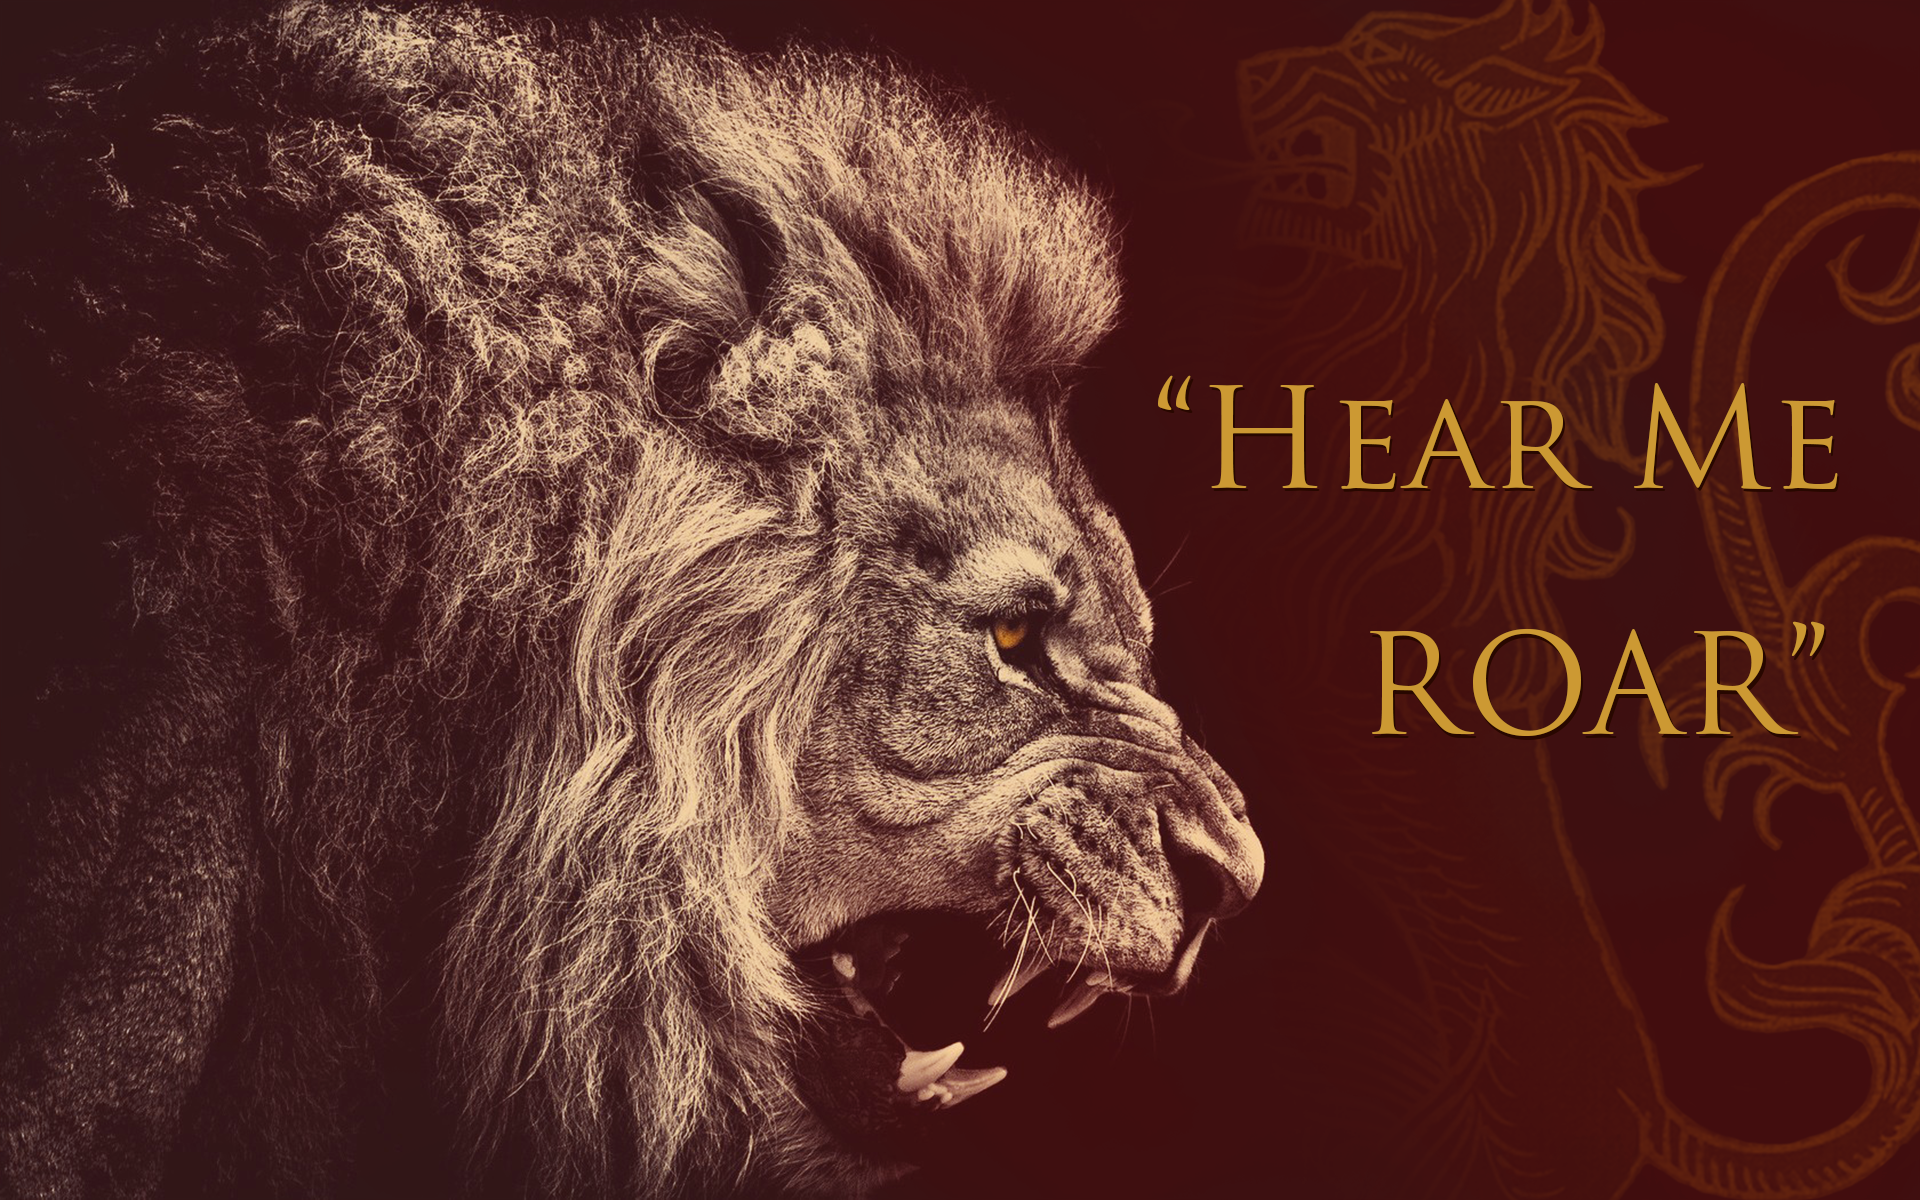 Game of Thrones House LannisterRoaring Lion Hd Wallpapers 1920x1080